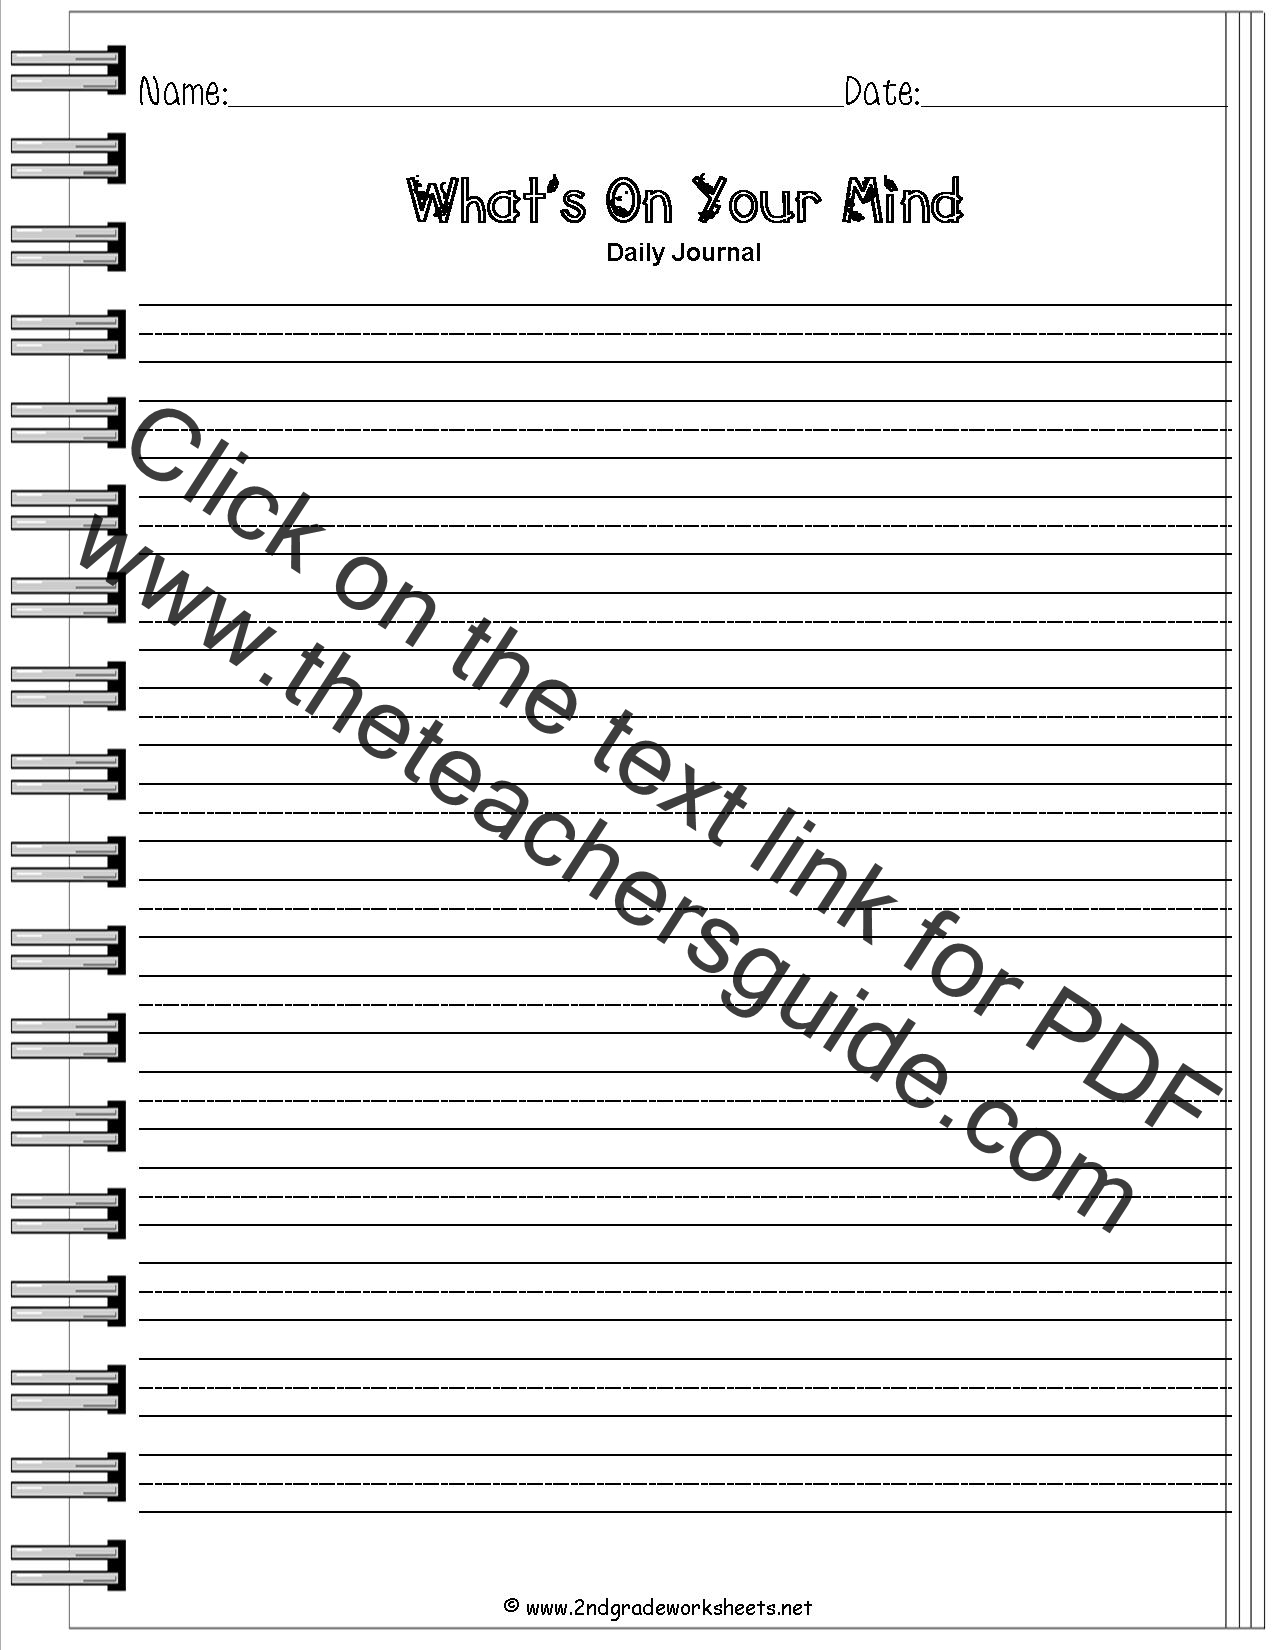 Worksheet 2nd Grade Writing Prompts Worksheets Grass